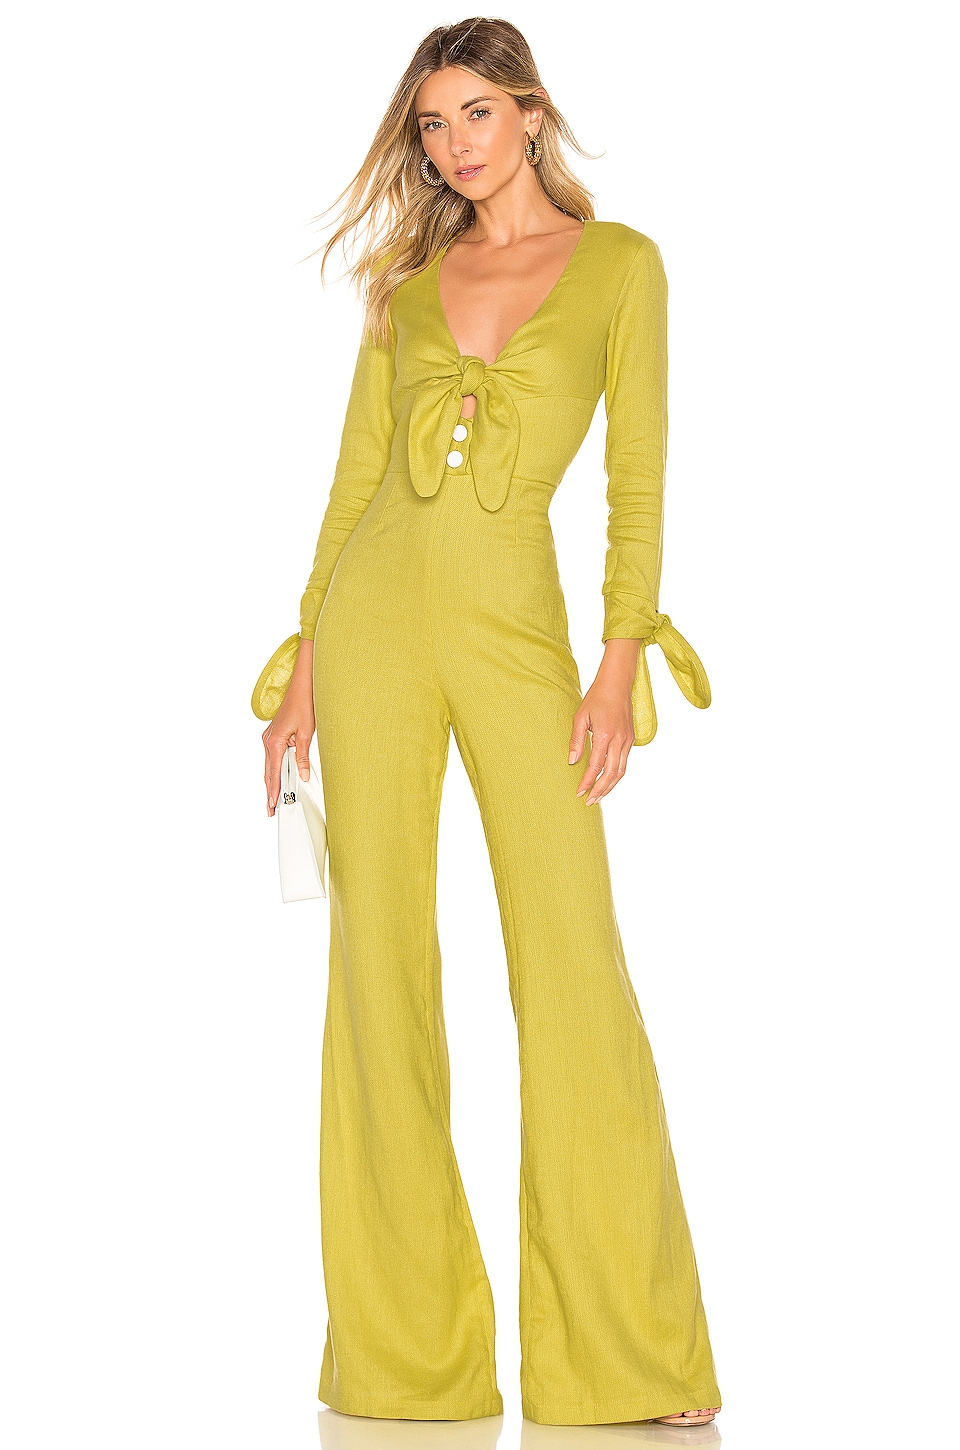 Alexis Kaleo Jumpsuit in Lemongrass Linen